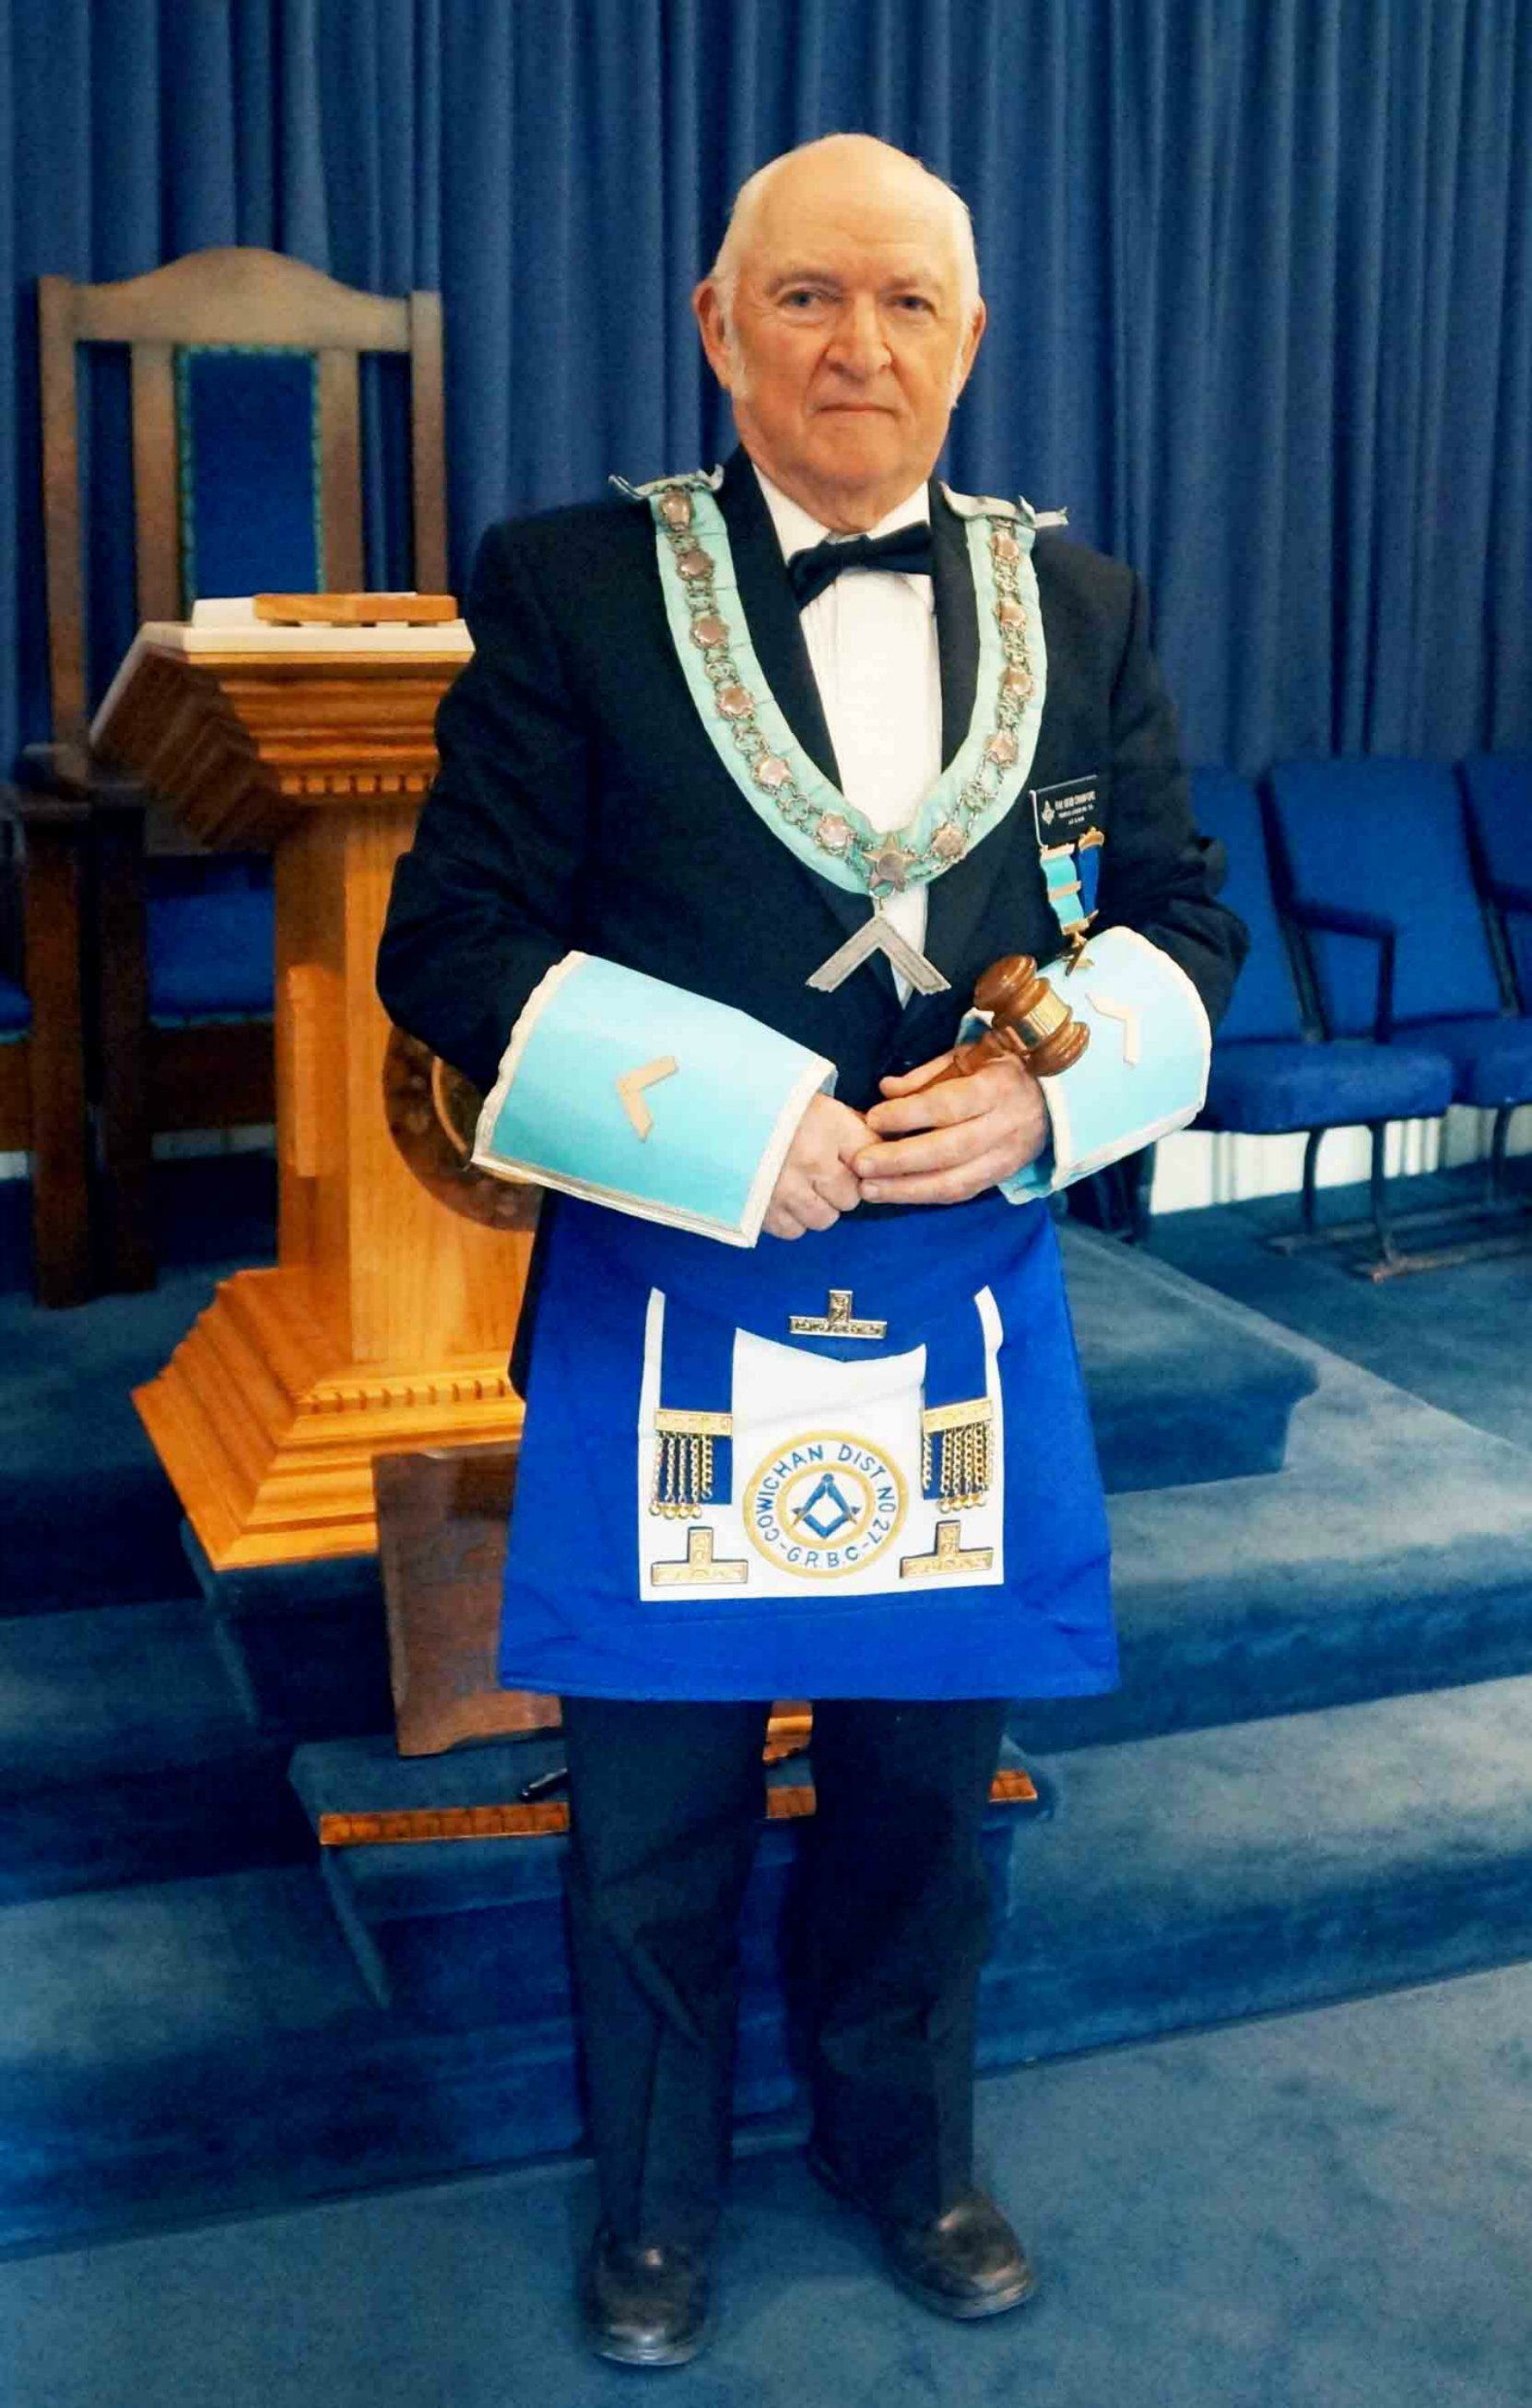 R.W.B. Bob Crawford, Worshipful Master of Temple Lodge, No.33, April 2015 to April 2016